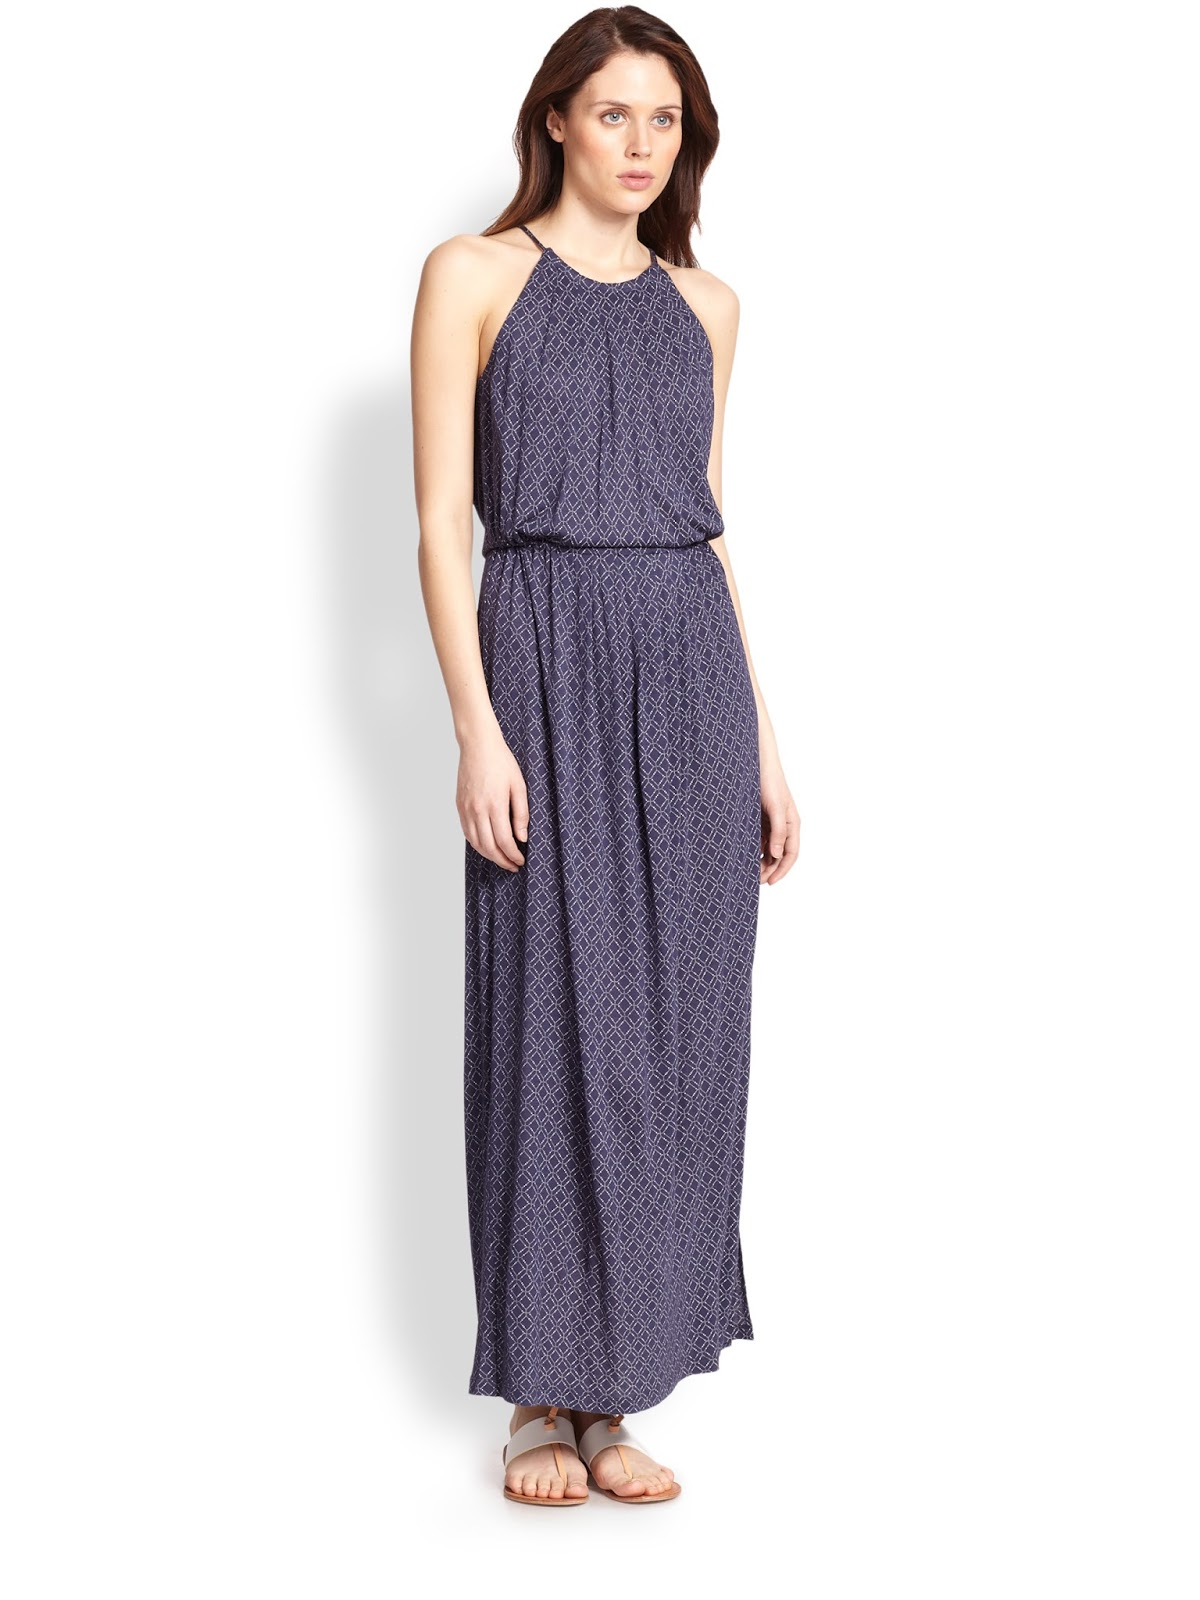 Dress-to-Impress Tips with Stunning Plus Size Maxi Dresses ...